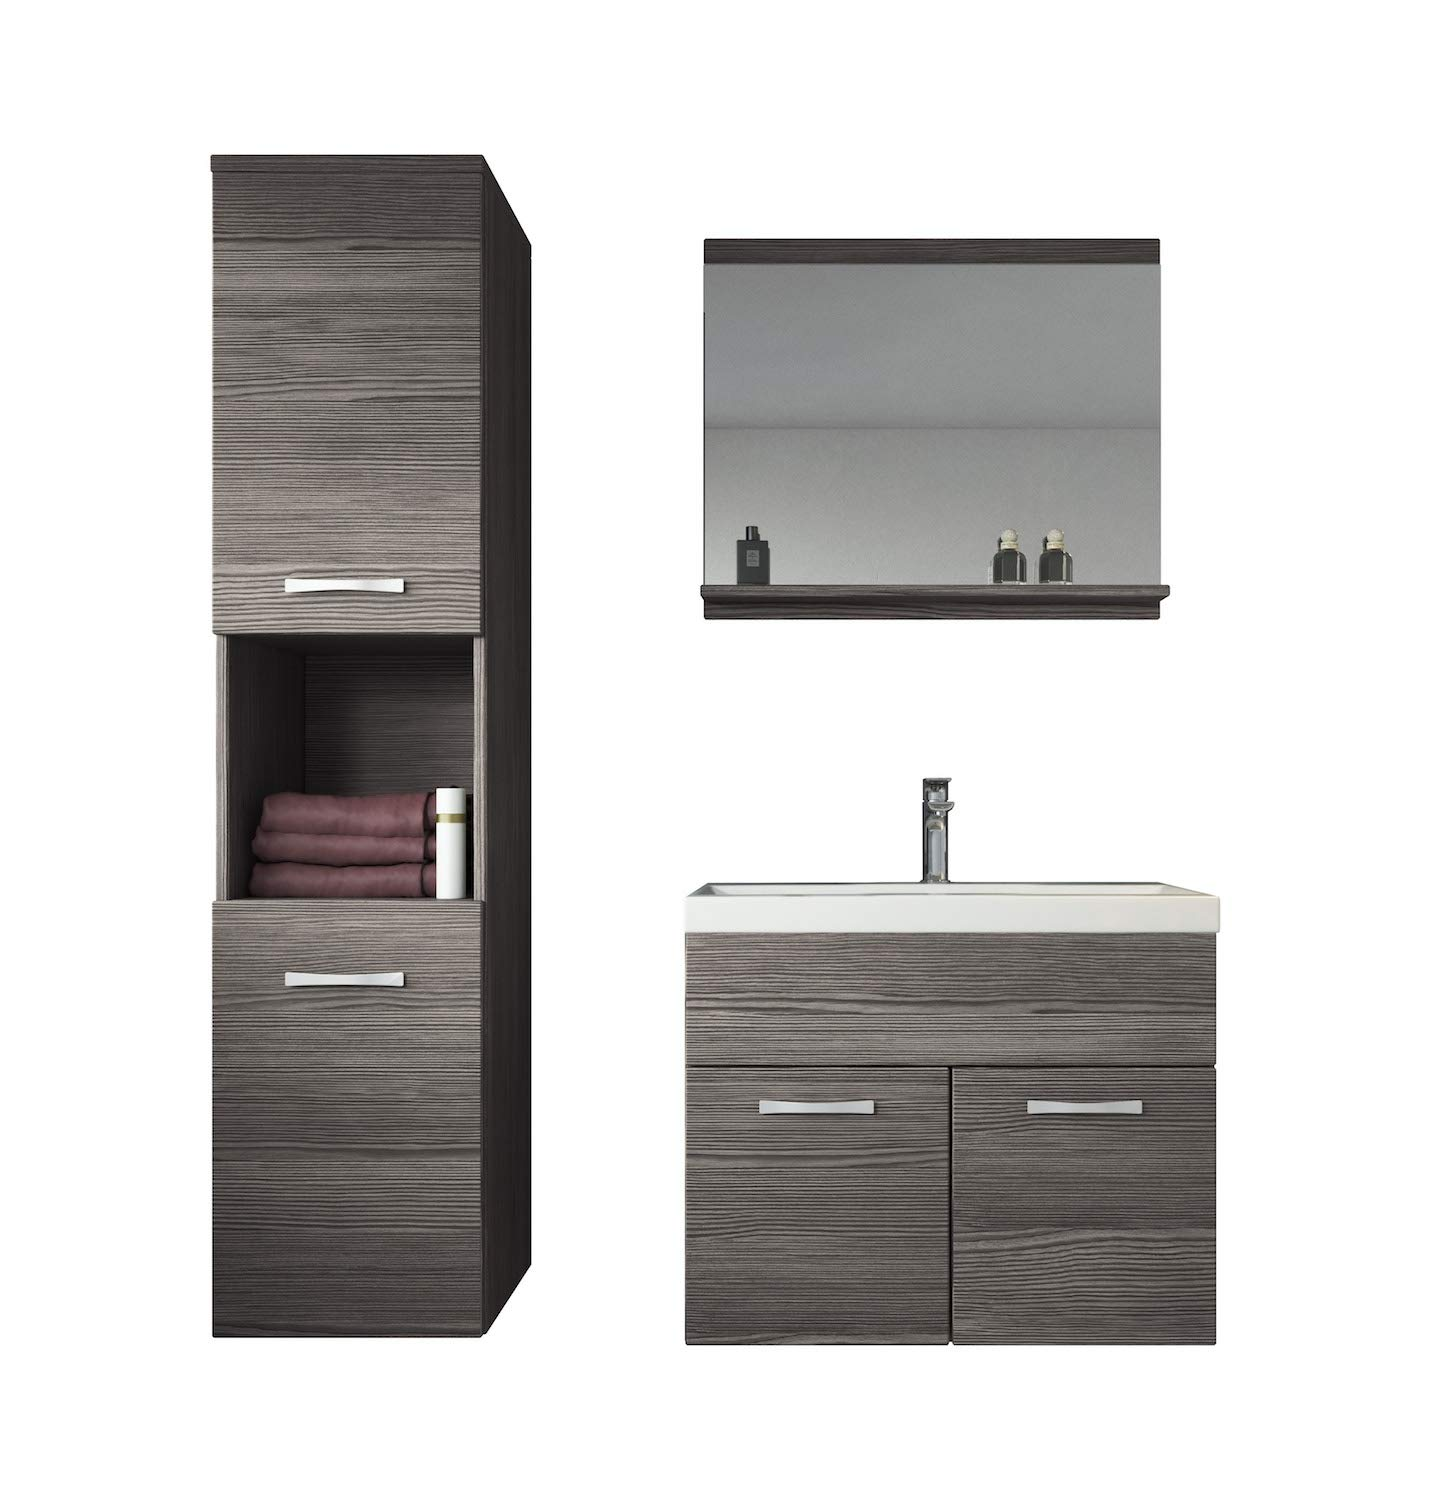 Bathroom furniture set Montreal 60cm basin - Storage cabinet vanity unit sink furniture (Bodega) Badplaats